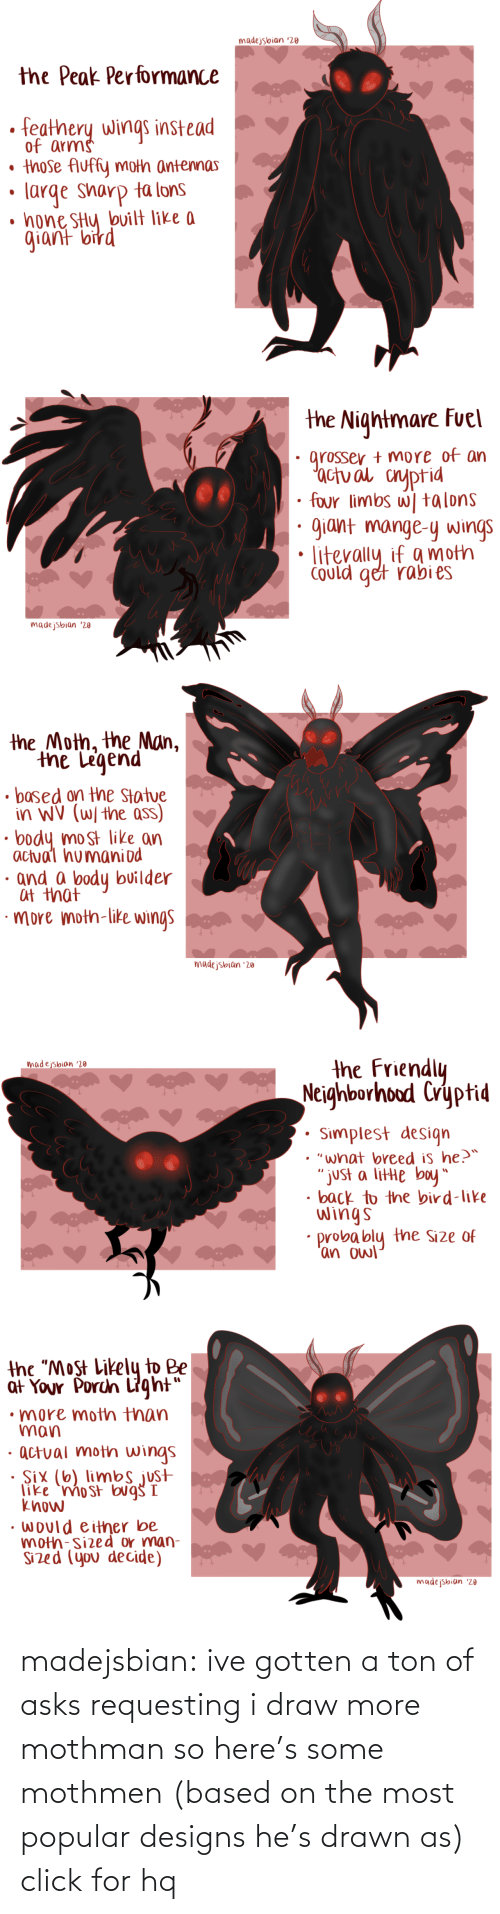 "those: madejsbian '20  the Peak Performance  feathery wings instead  of arms  • those Auffy moth antennas  large sharp ta lons  • hone SHy bvilt like a  giant bird   the Nightmare Fuel  grosser + more of an  'actual cnyptid  four limbs w| talons  giant mange-y wings  Could get rabi es  madejsbian '20   the Moth, the Man,  the Legend  • based on the Statue  in WV (W/ the ass)  body most like an  actual humaniod  · and a body builder  at that  ·more moth-like wings  madejsbian '20   the Friendly  Neighborhood Cryptid  madejsbian '20  Simplest design  • ""what breed is he?™  ""just a litte boy""  • back to the bird-like  wings  probably the Size of  'an owl   the ""Most Likely to Be  at Your Porch Light""  •more moth than  man  · actual moth wings  · Six (6) limbs just  like 'mo st bug I  know  • would either be  moth-sized or man-  Sized (you decide)  madejsbian '20 madejsbian: ive gotten a ton of asks requesting i draw more mothman so here's some mothmen (based on the most popular designs he's drawn as)